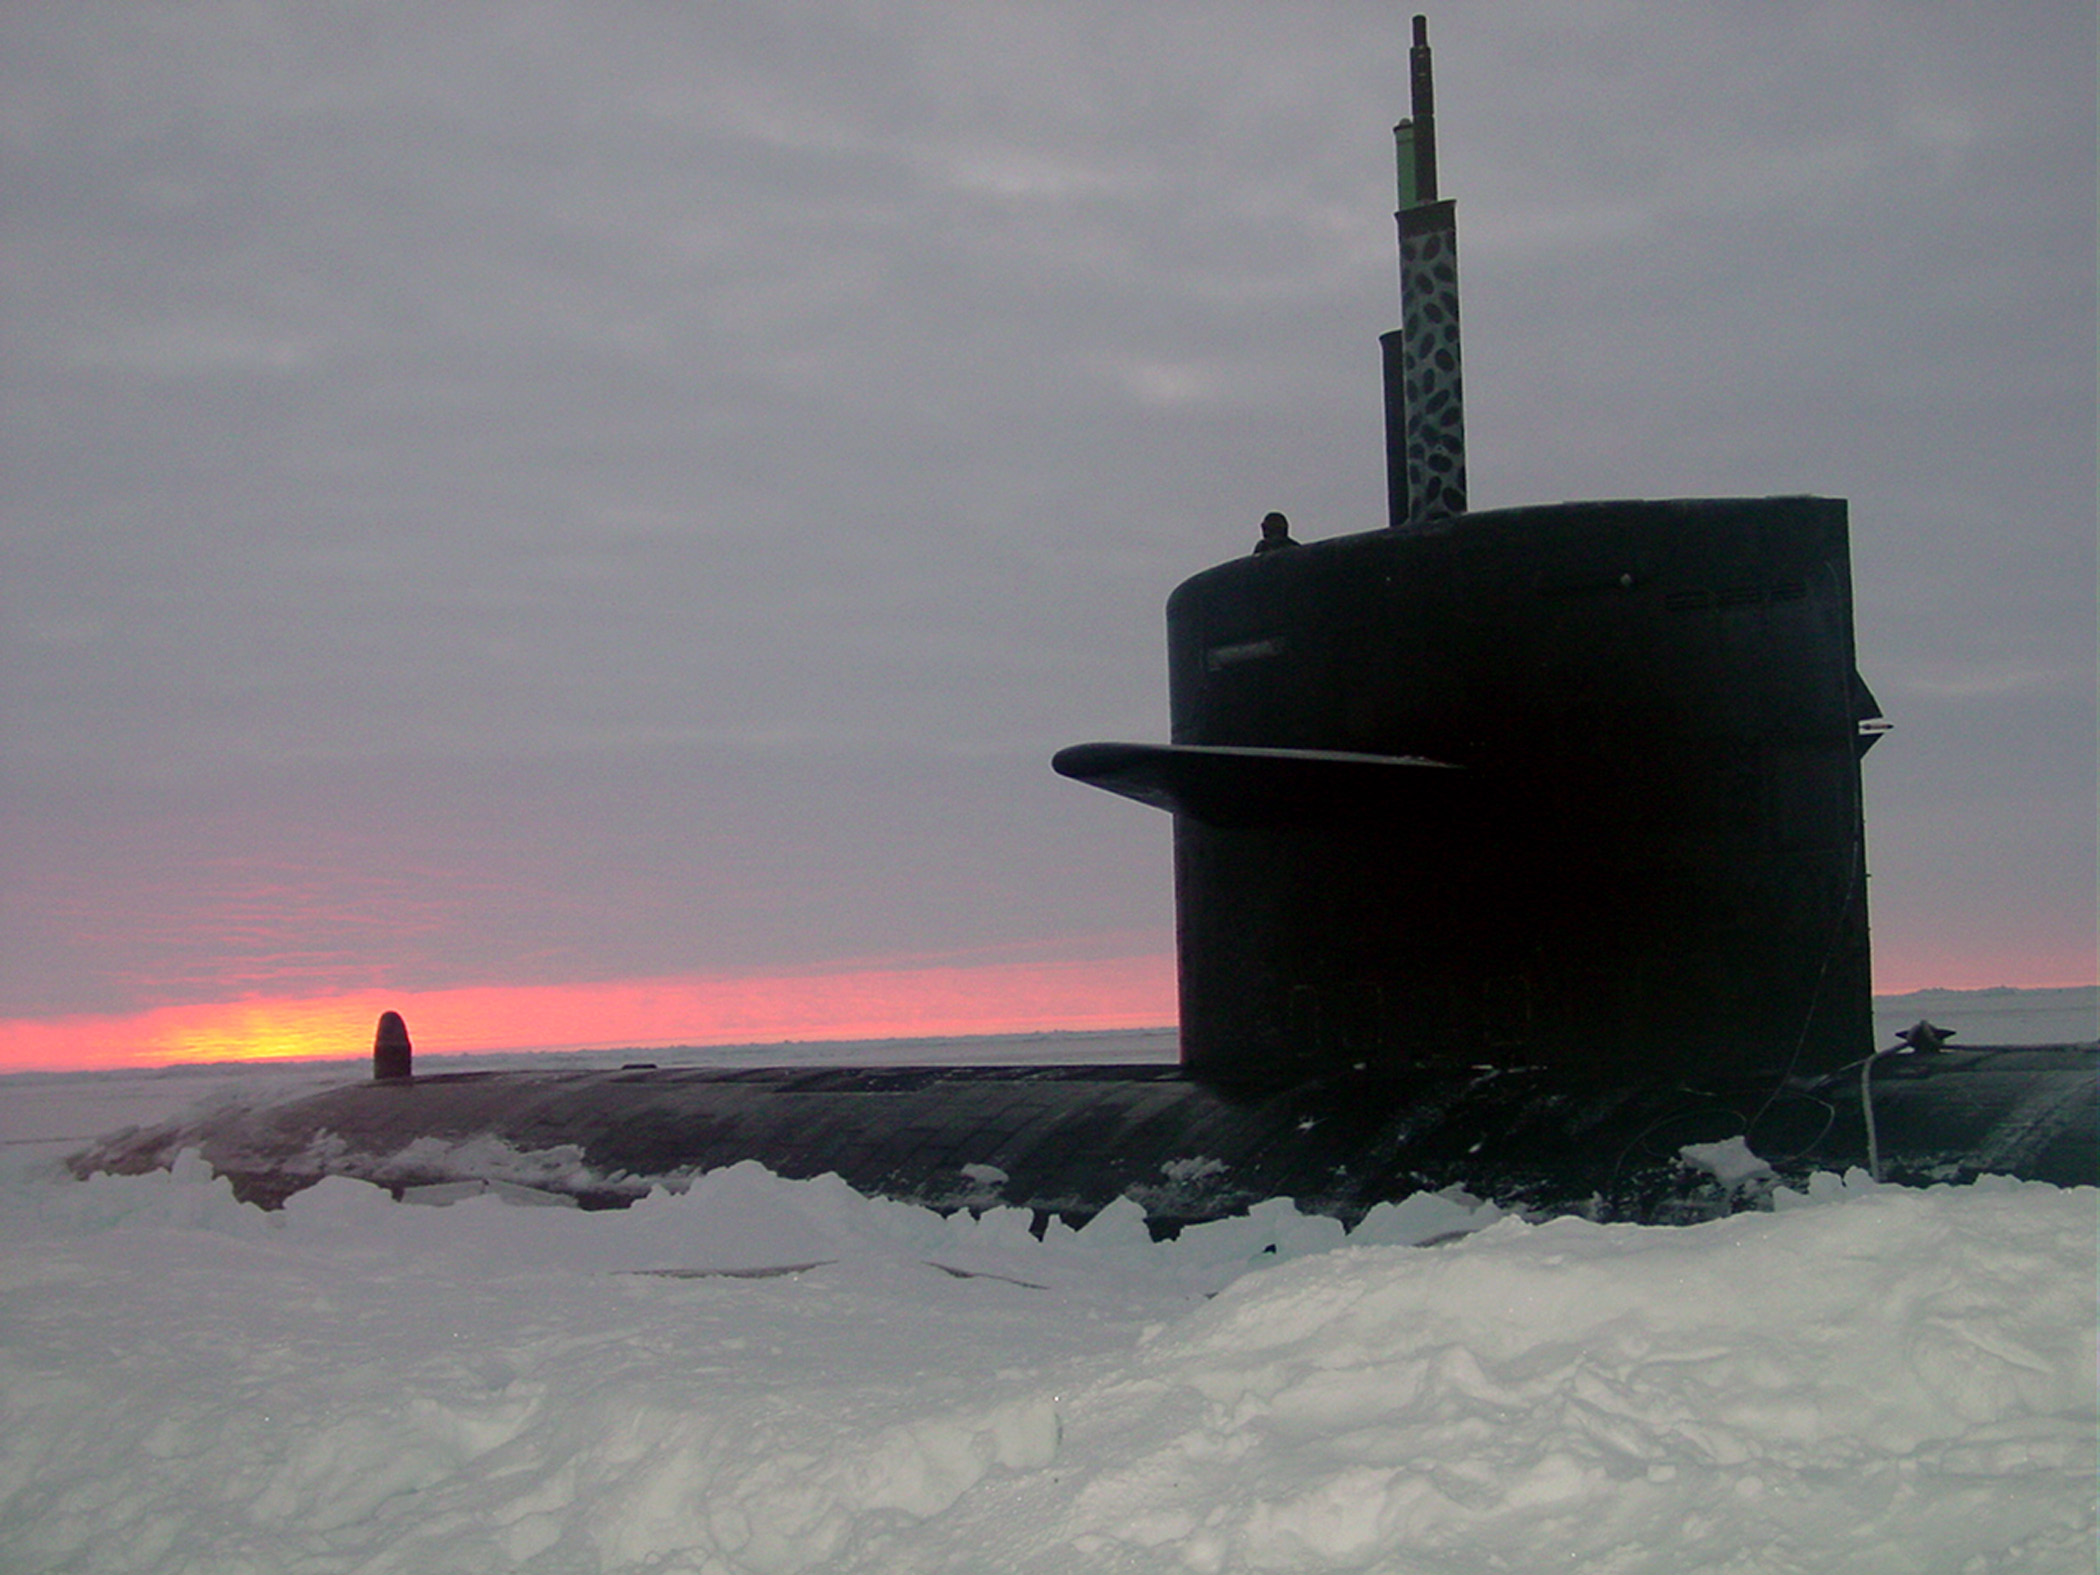 US_Navy_031000-N-XXXXB-004_The_Los_Angeles-class_fast_attack_submarine_USS_Honolulu_(SSN_718)_sits_surfaced_280_miles_from_the_North_Pole_at_sunset.jpg